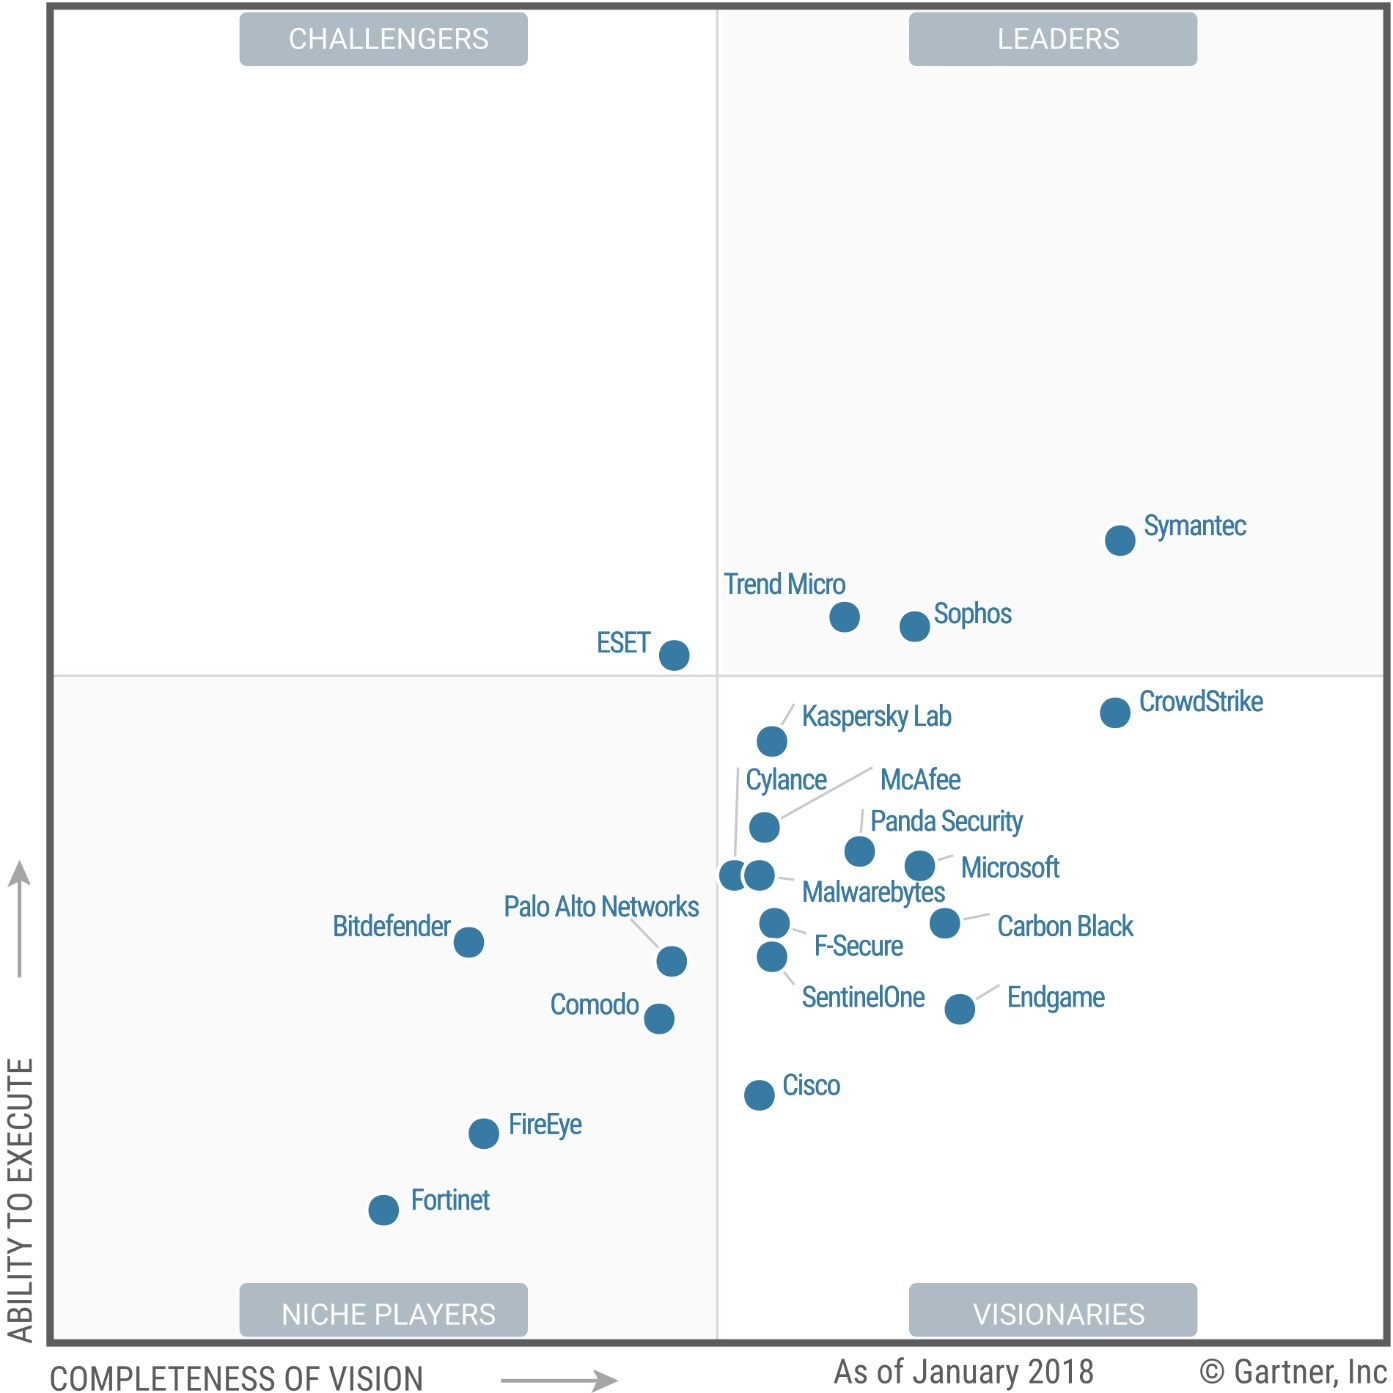 Gartner-Magic-Quadrant-for-Endpoint-Protection-Platforms-2018-Trend-Micro